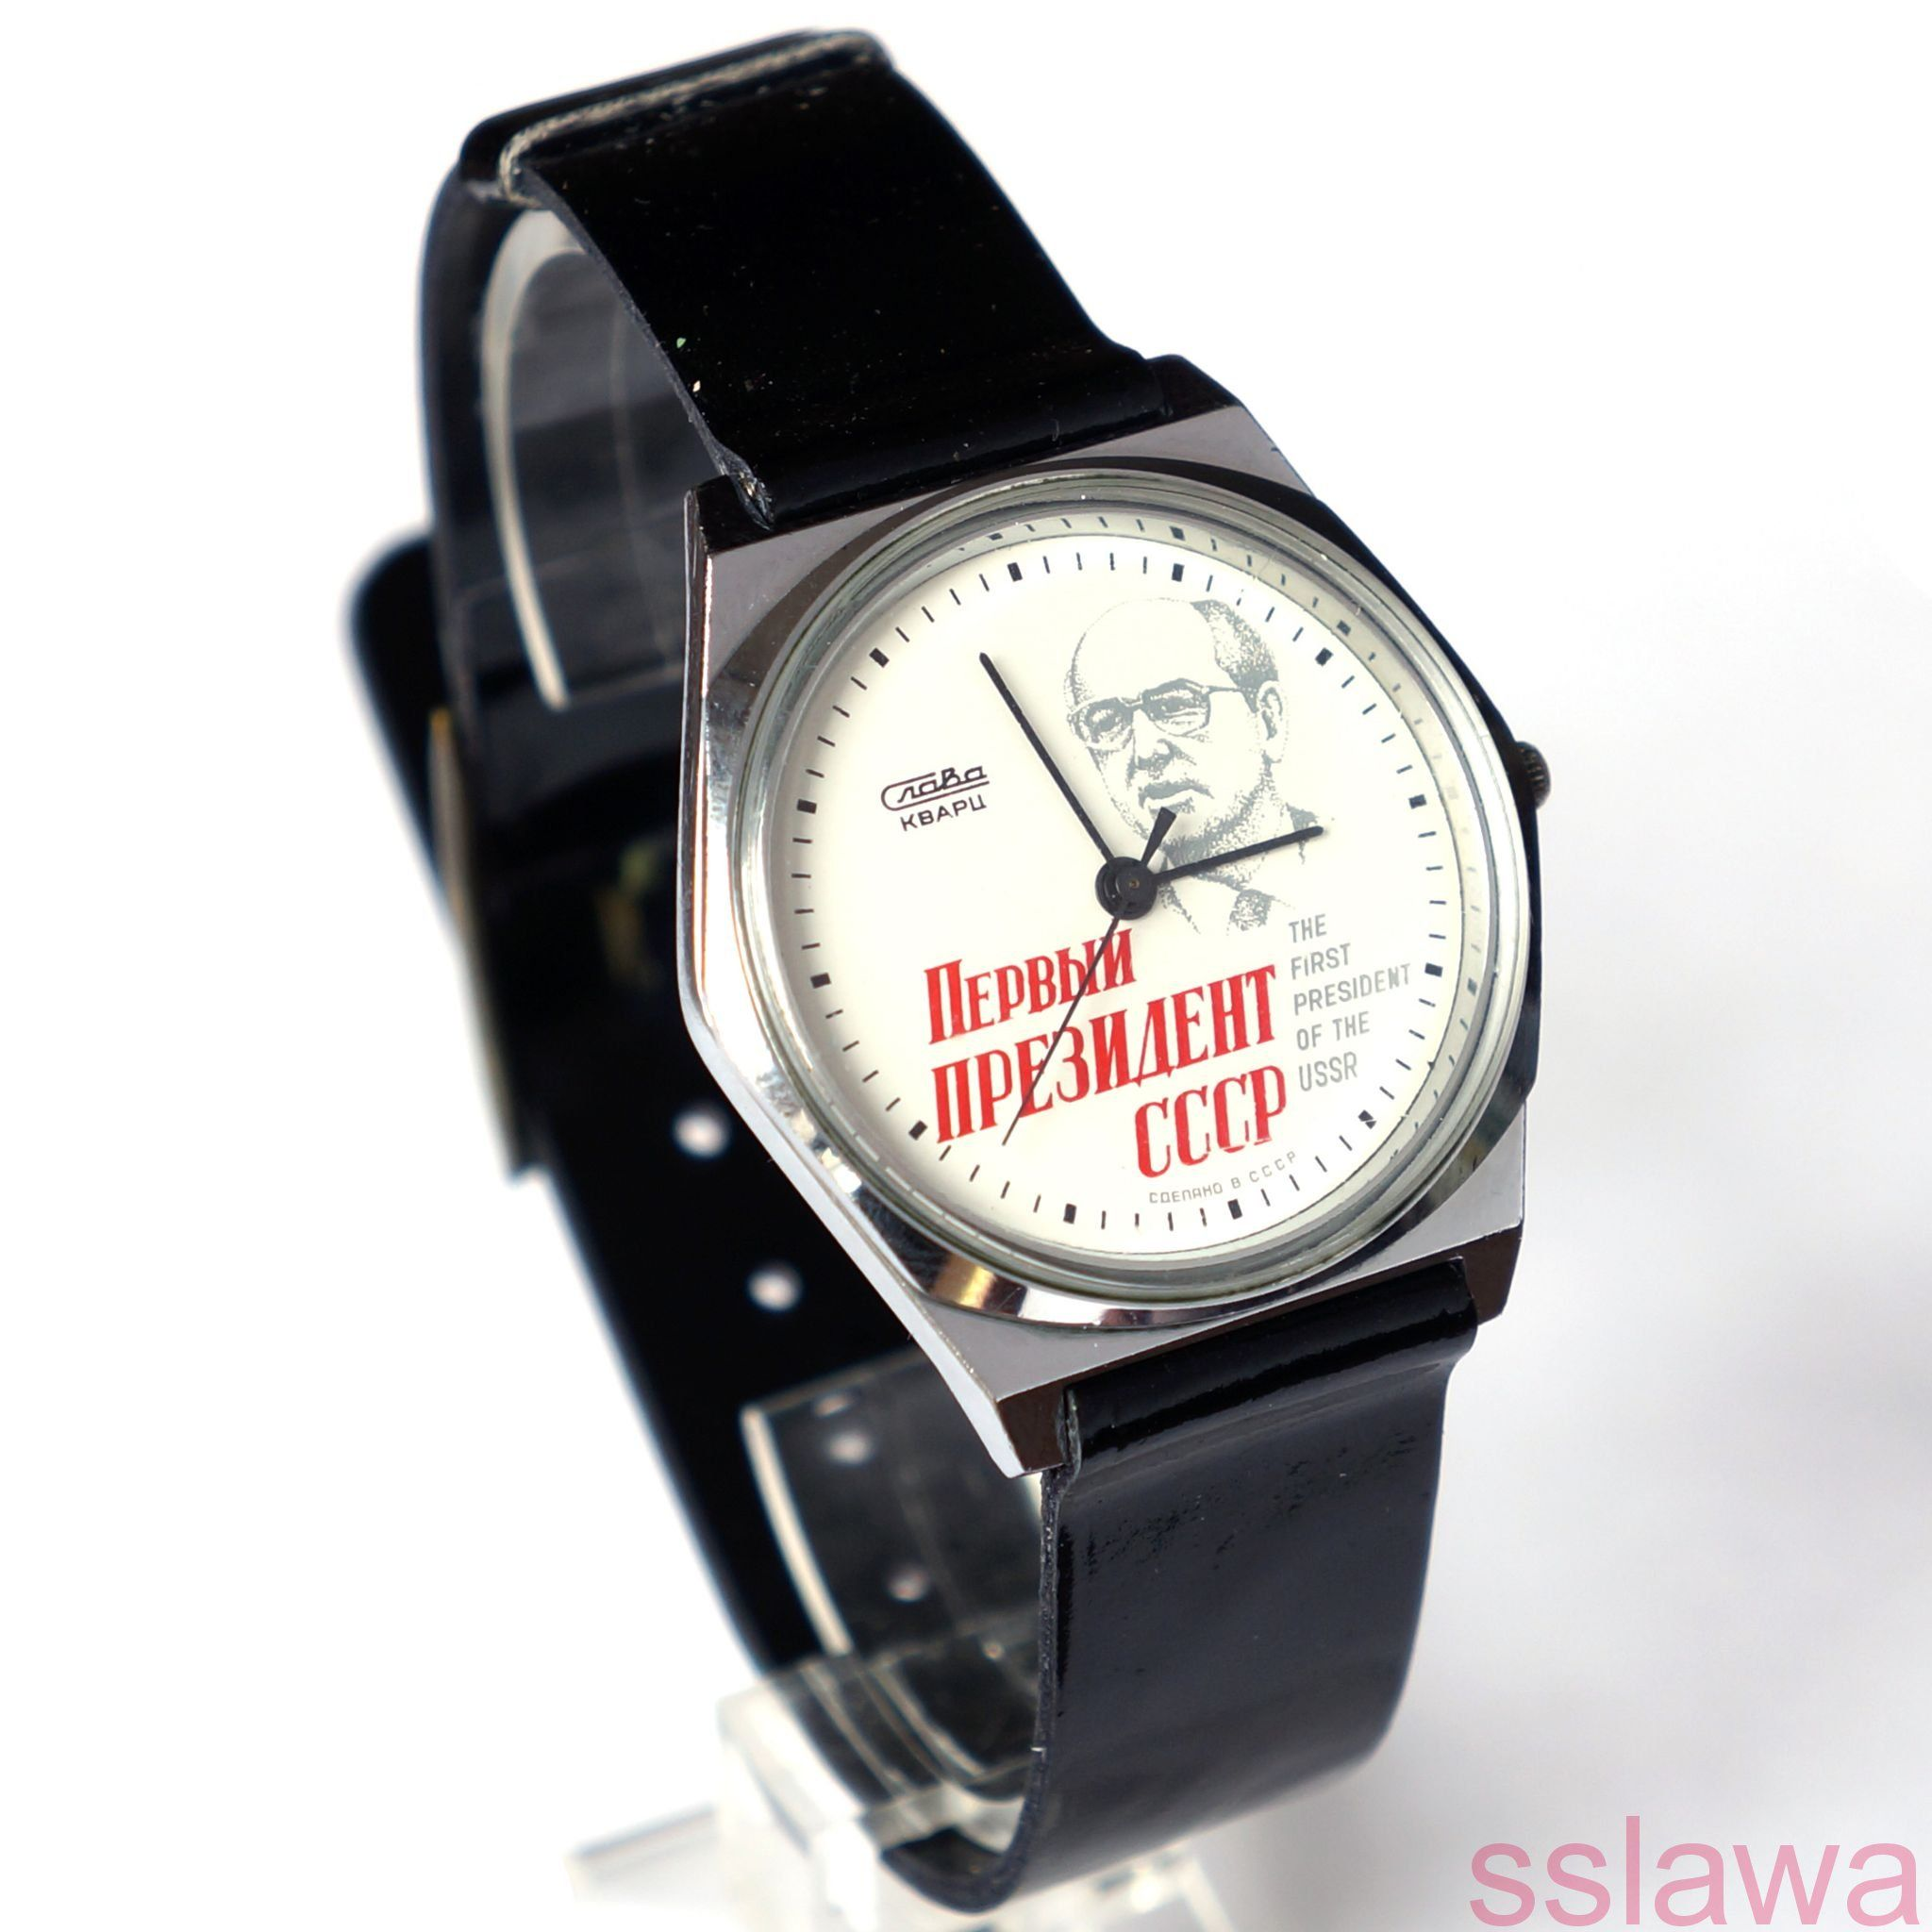 hardly revue cool for guy make off friend blinds this watches img has and the broken blind watch minute is calibre hand service a running i so mine of would thought gift